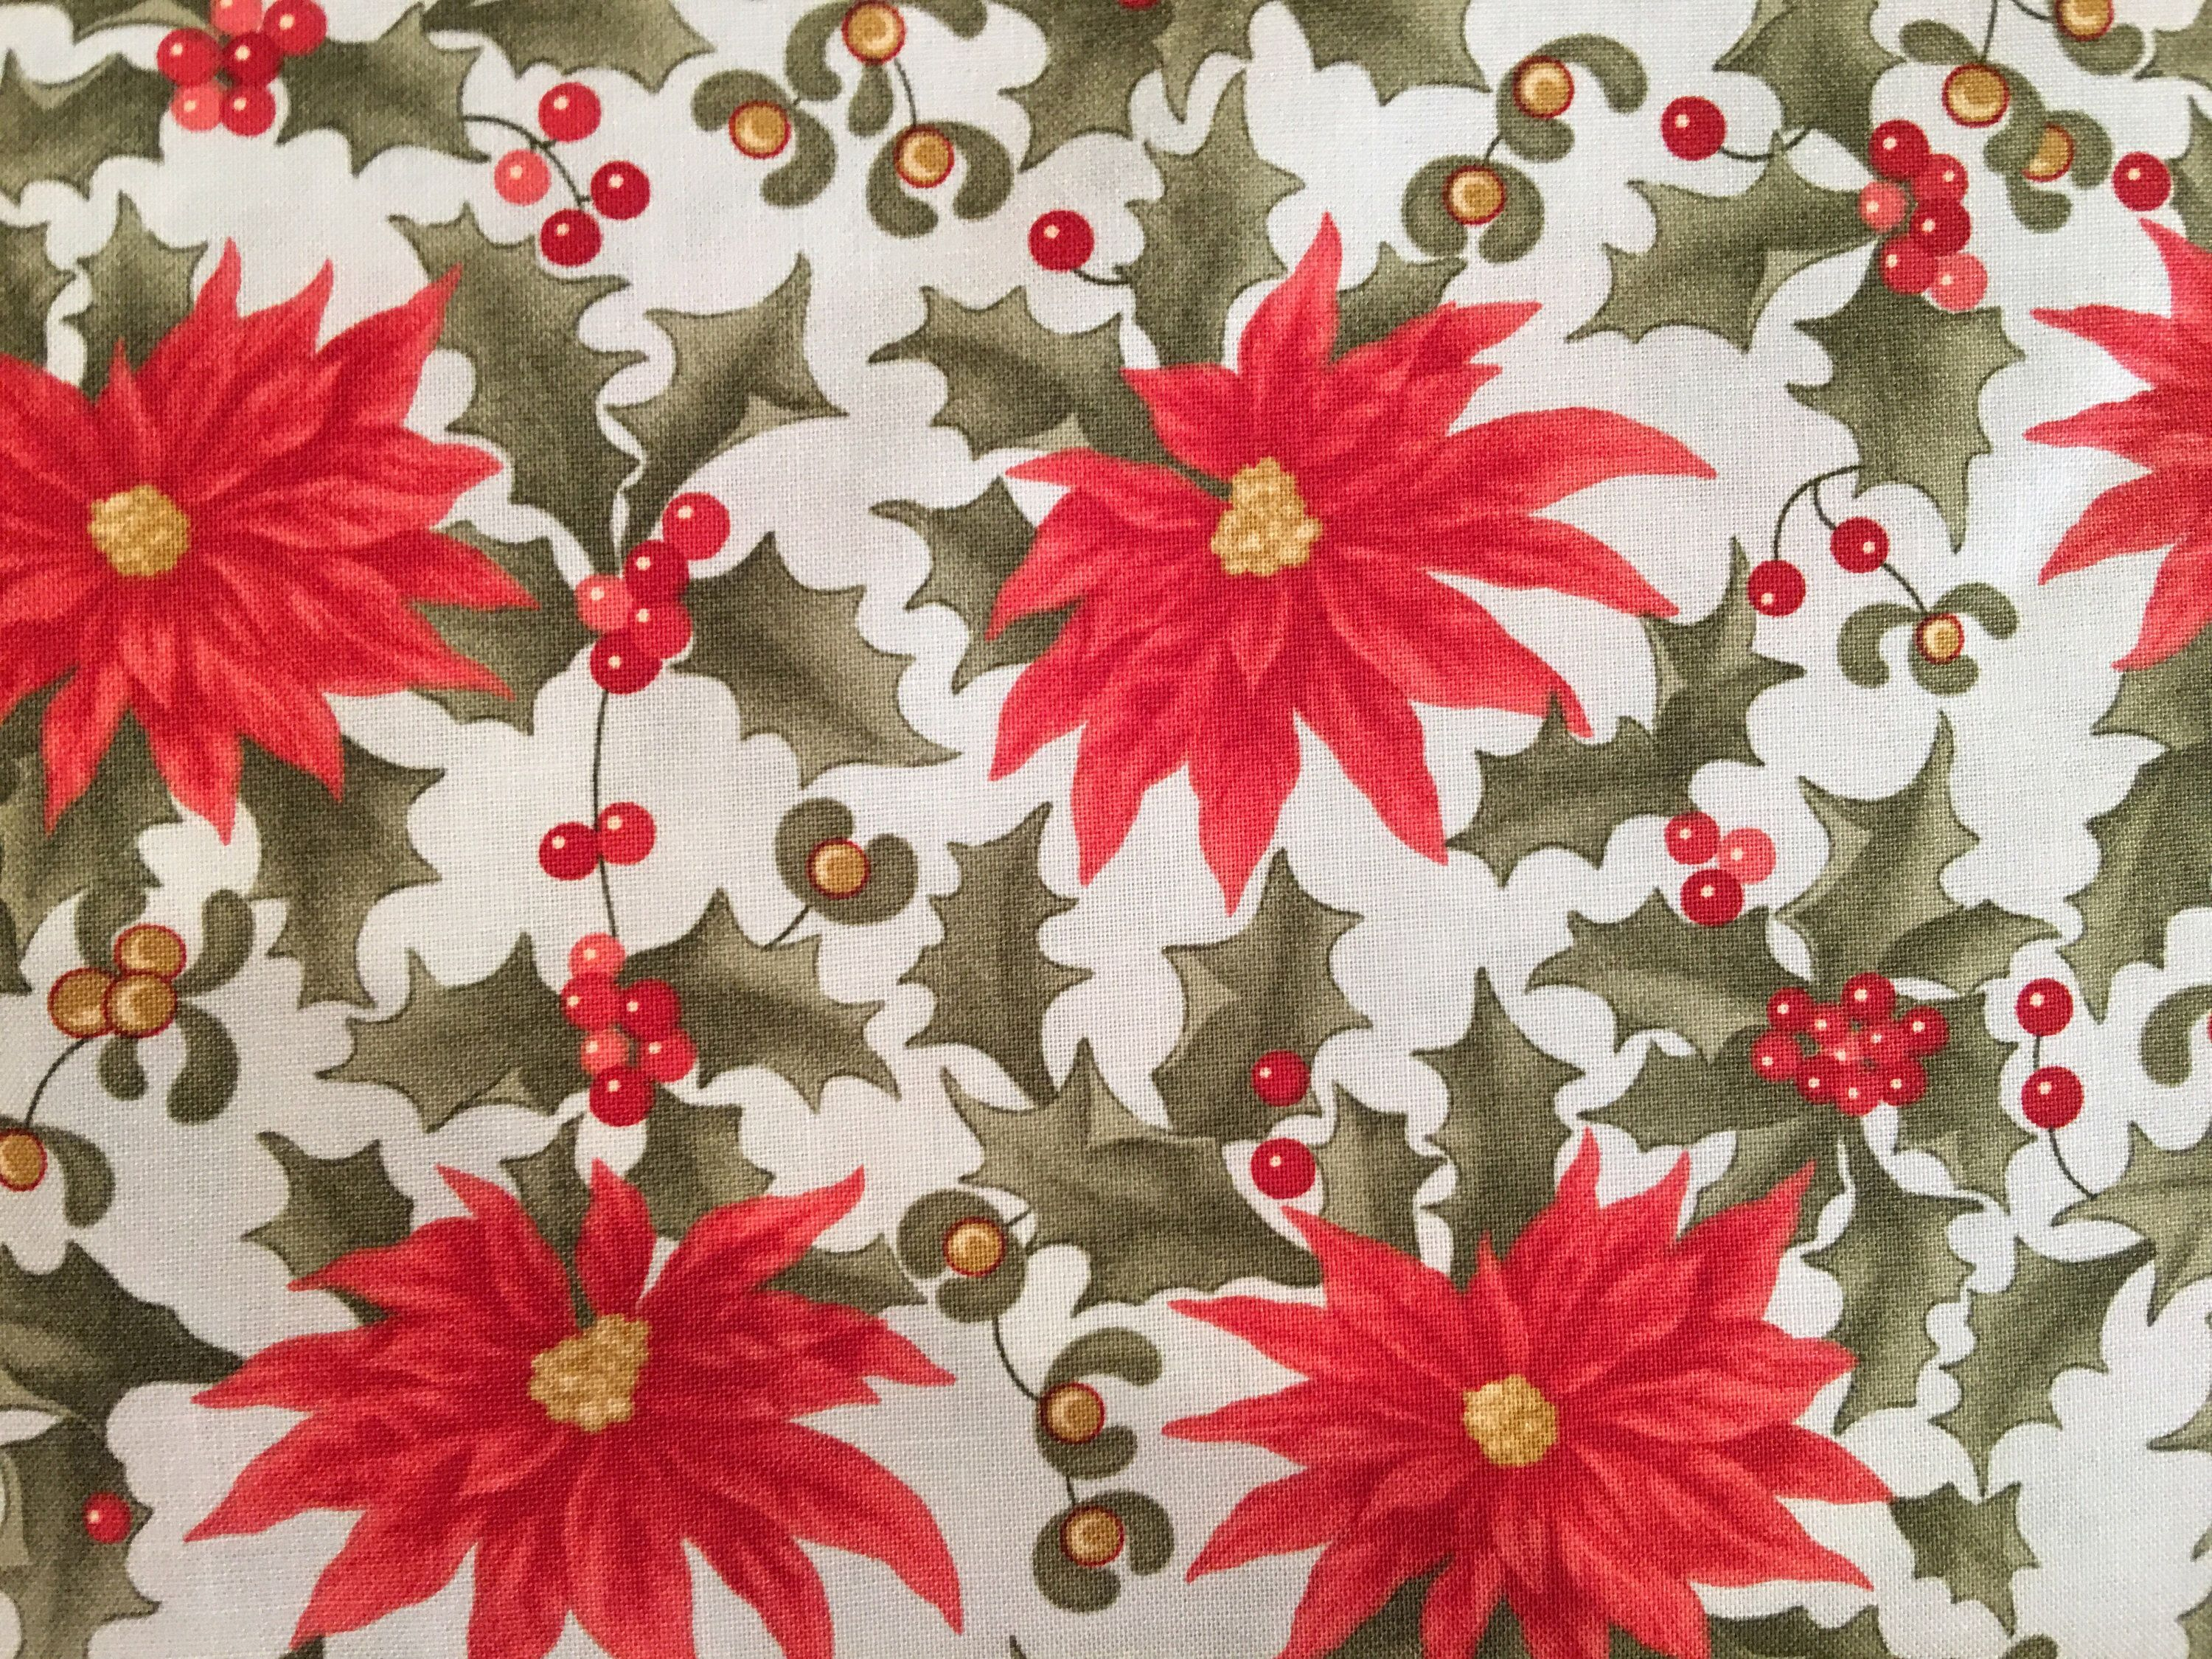 Christmas Fabric By The Yard Poinsettia Fabric By The Yard Etsy